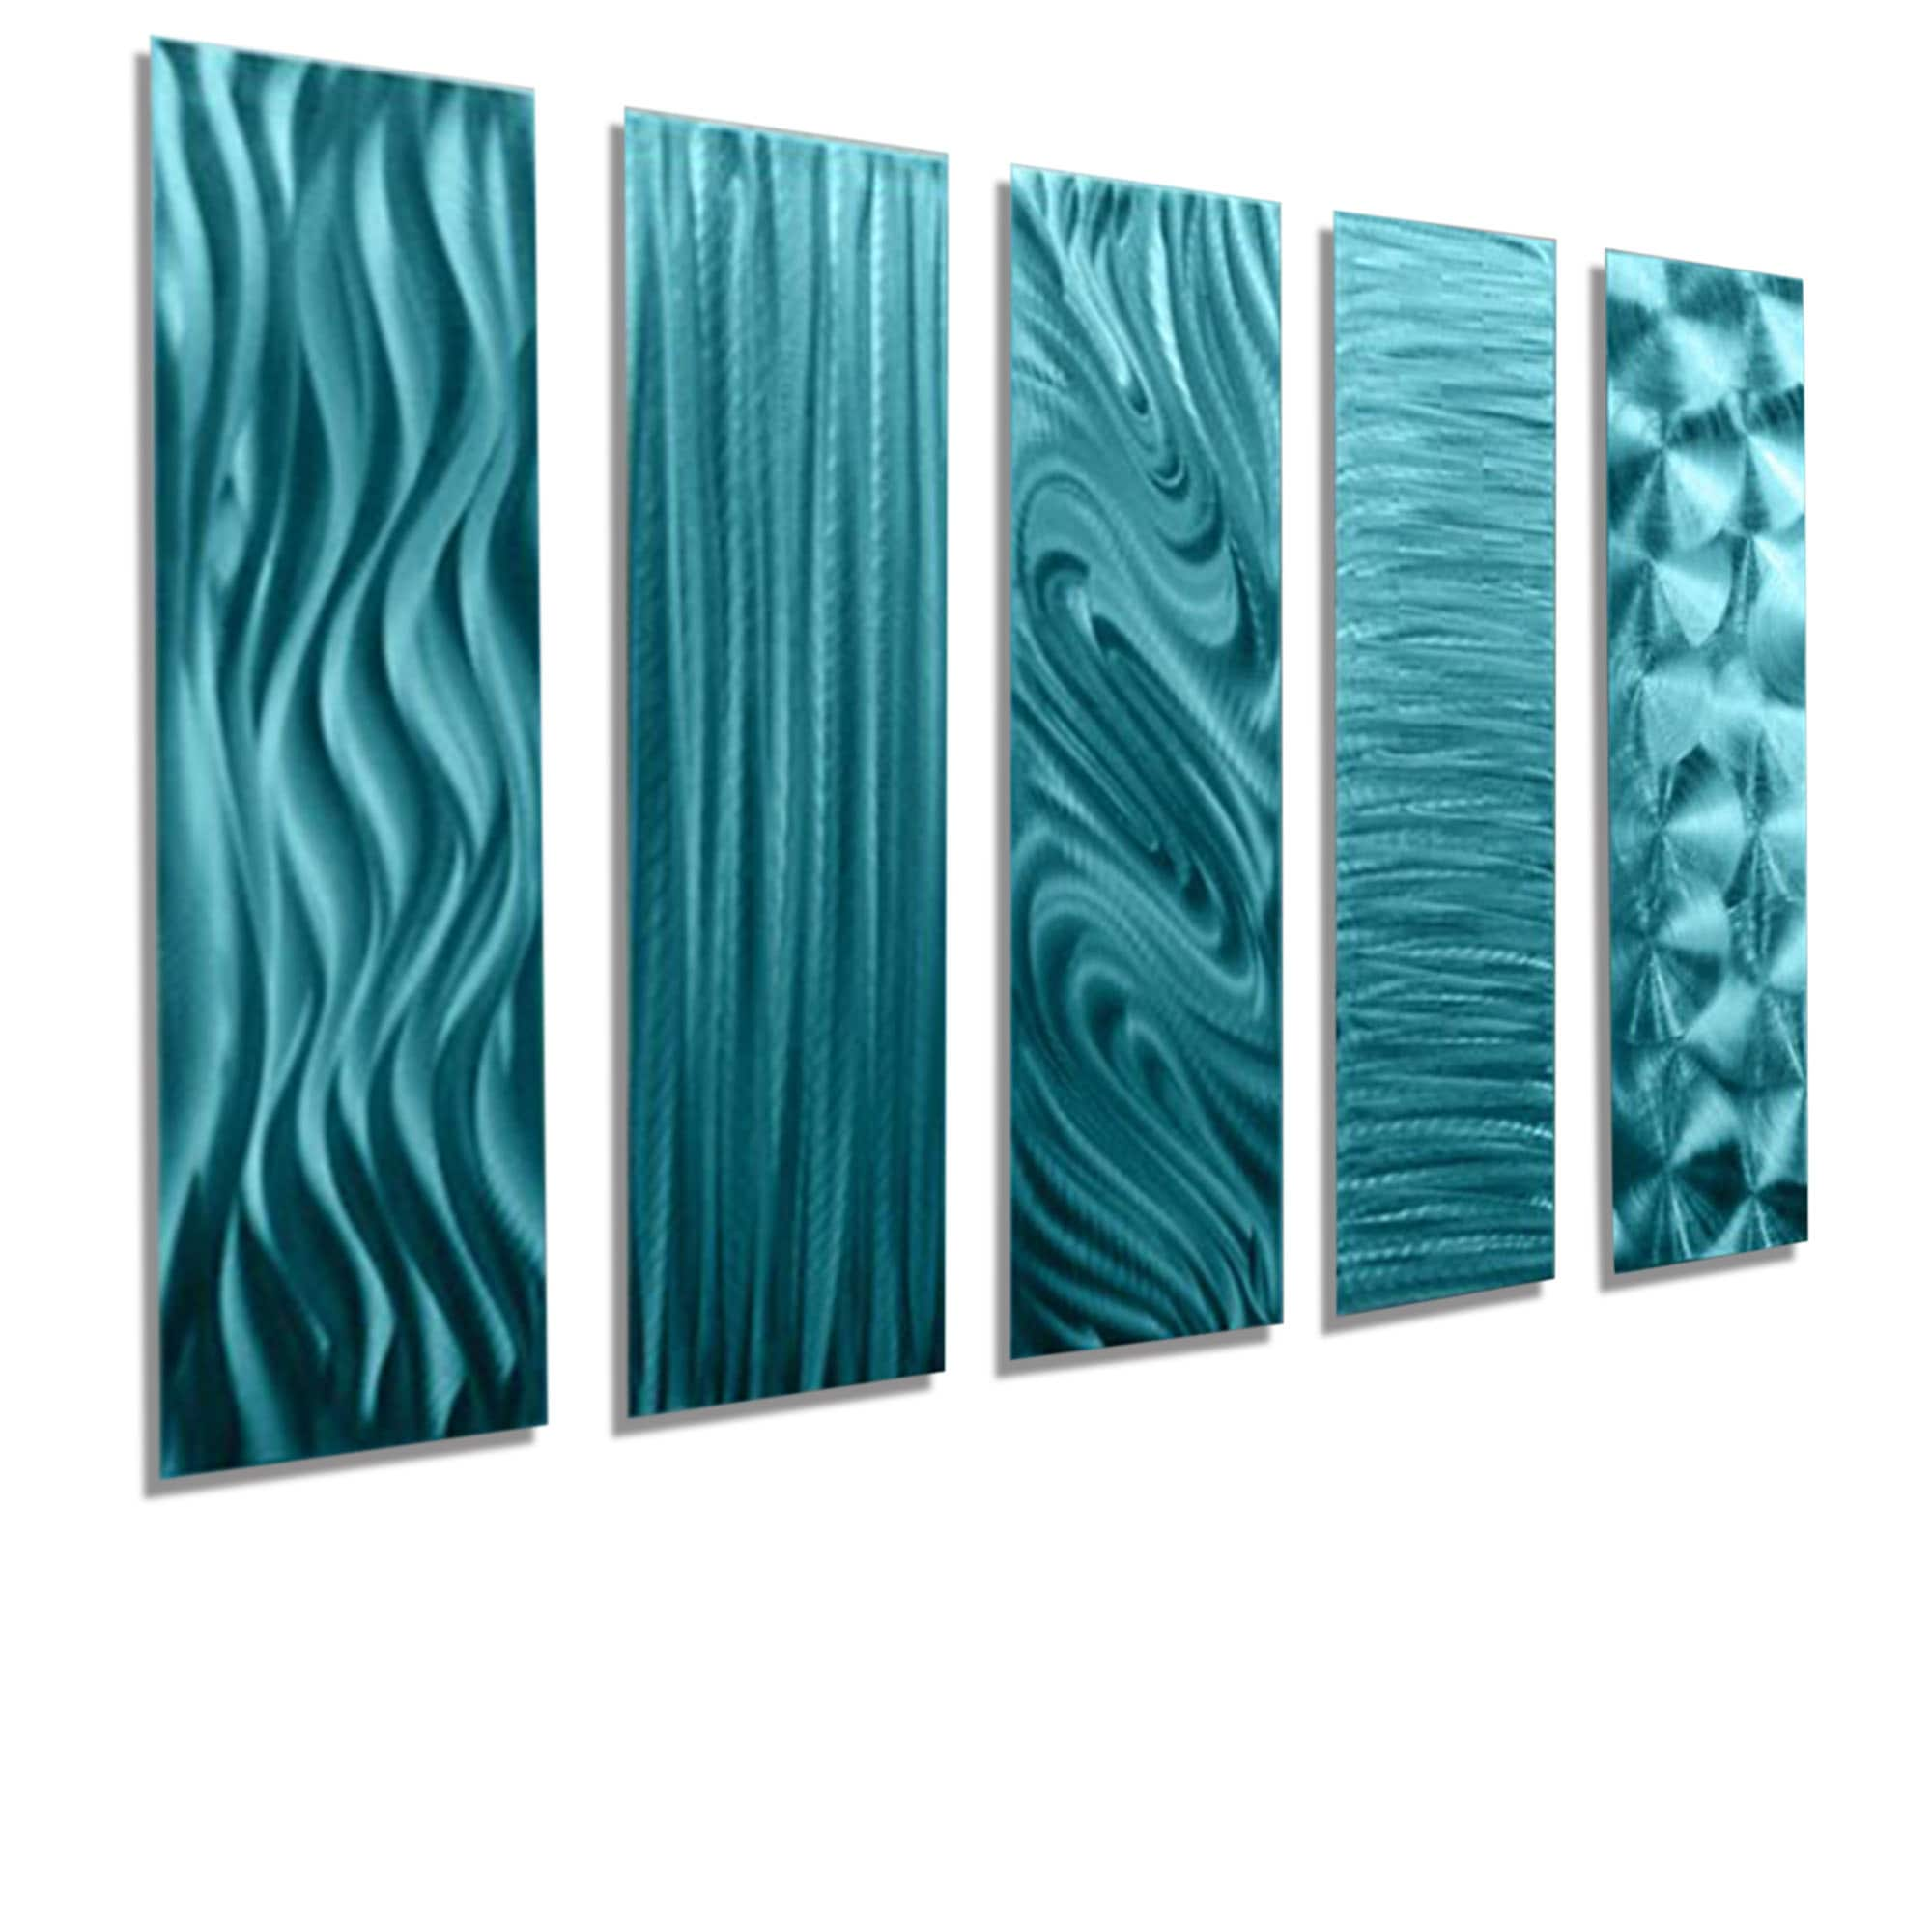 Blue Metal Wall Art Interesting Statements2000 Set Of 5 Aqua Blue Metal Wall Art Accentsjon Design Ideas